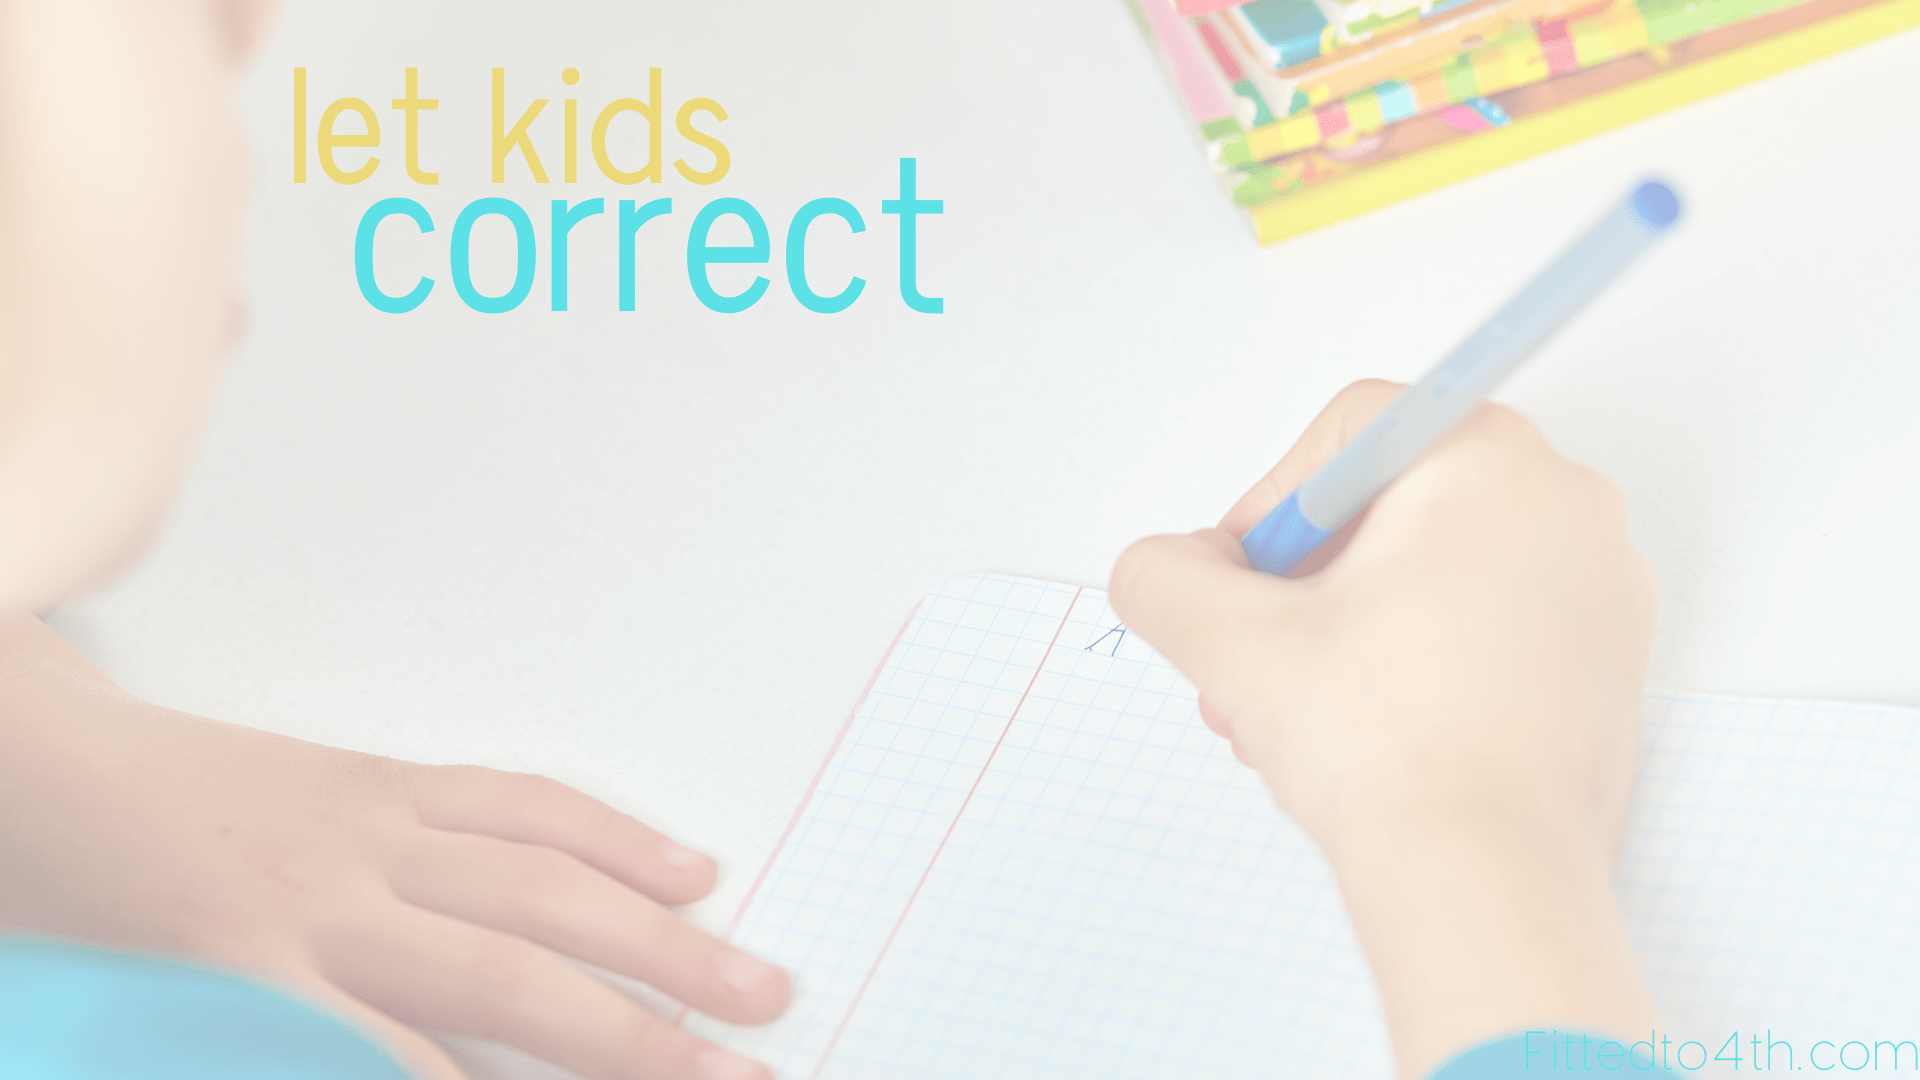 To save time and increase learning, let kids correct their own homework.